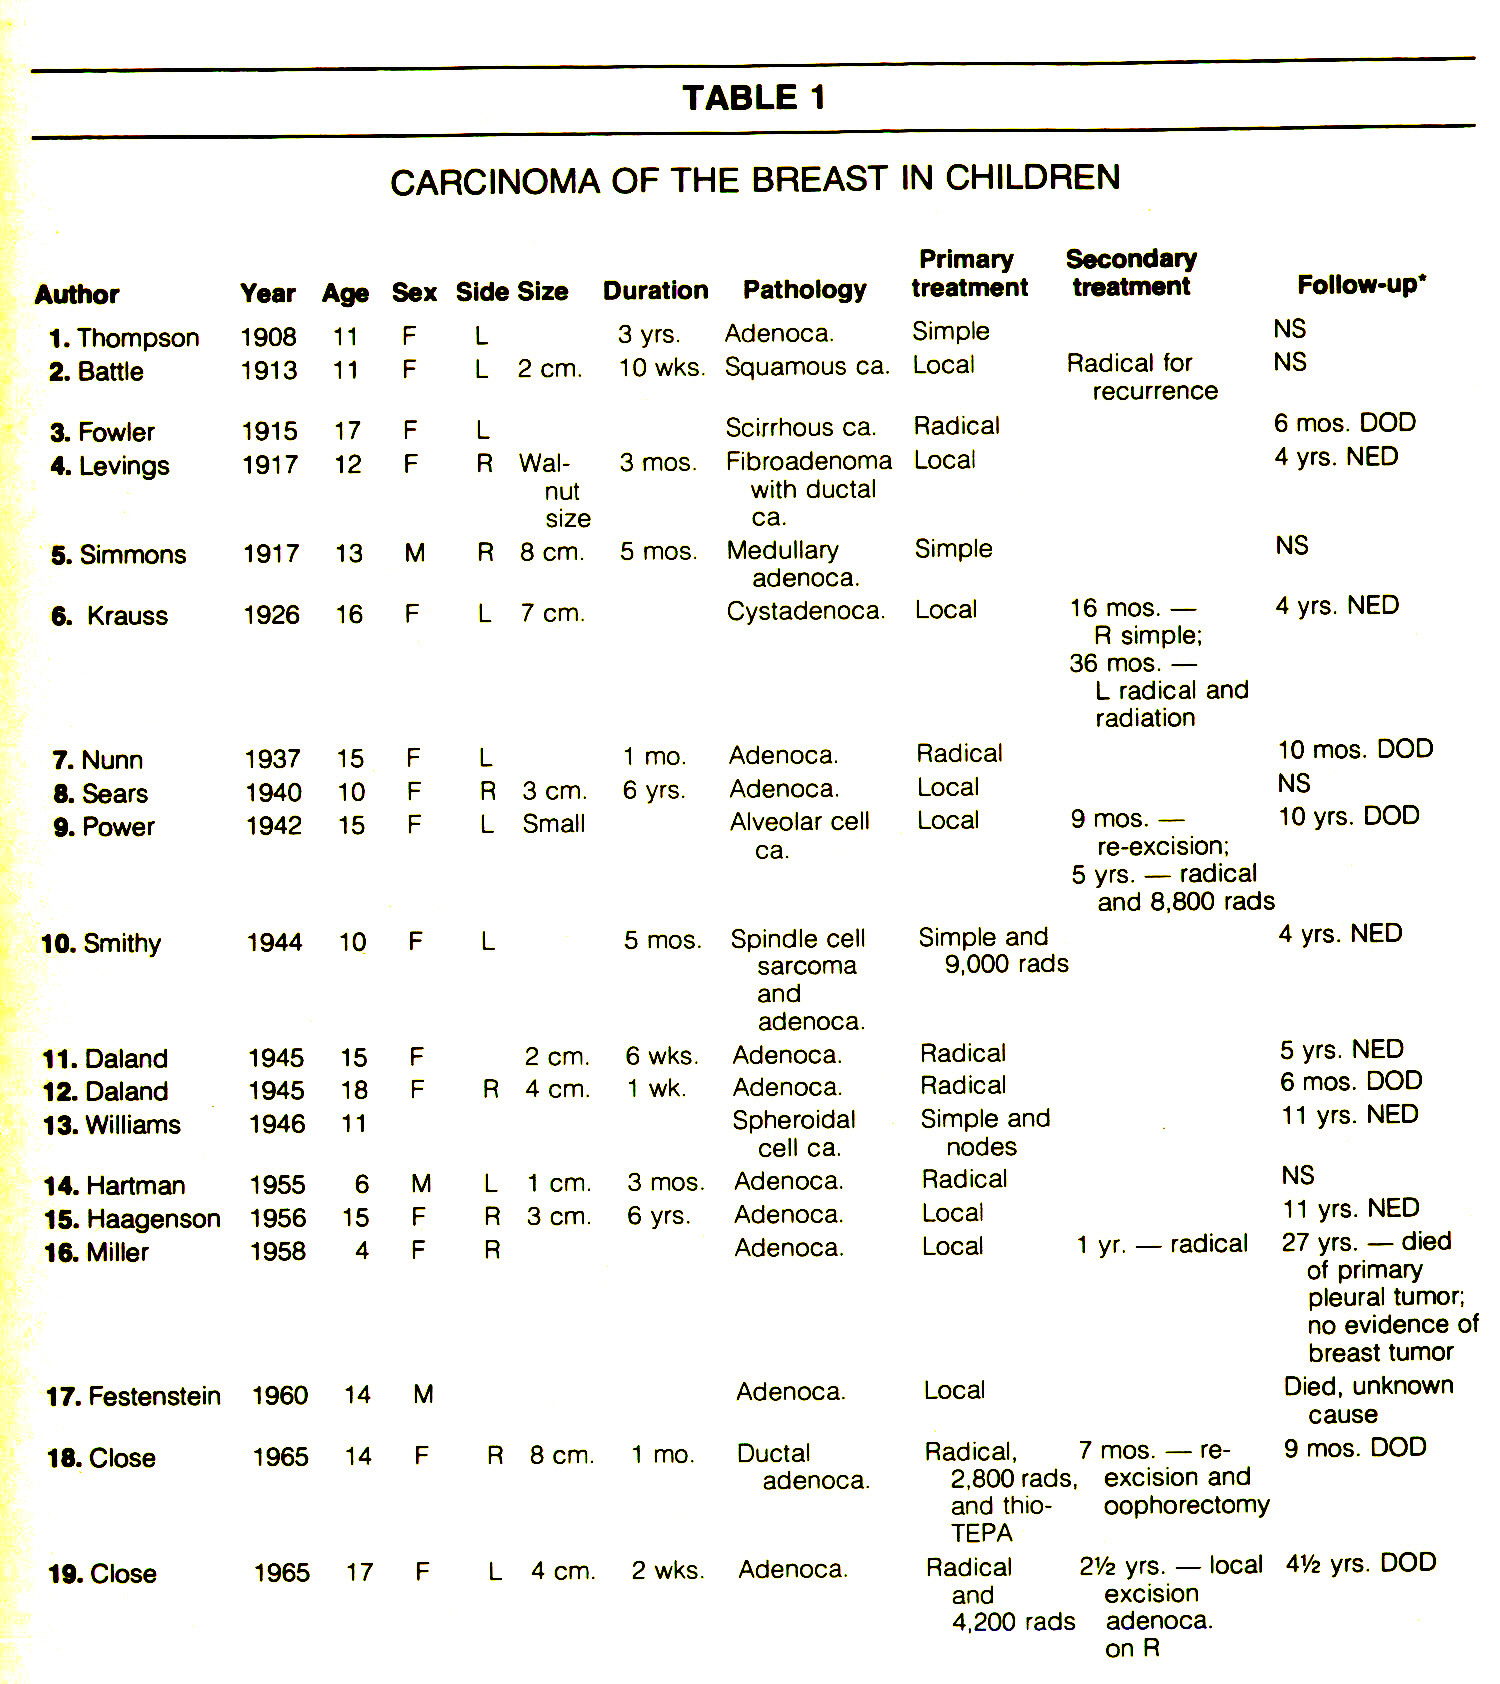 TABLE 1CARCINOMA OF THE BREAST IN CHILDREN